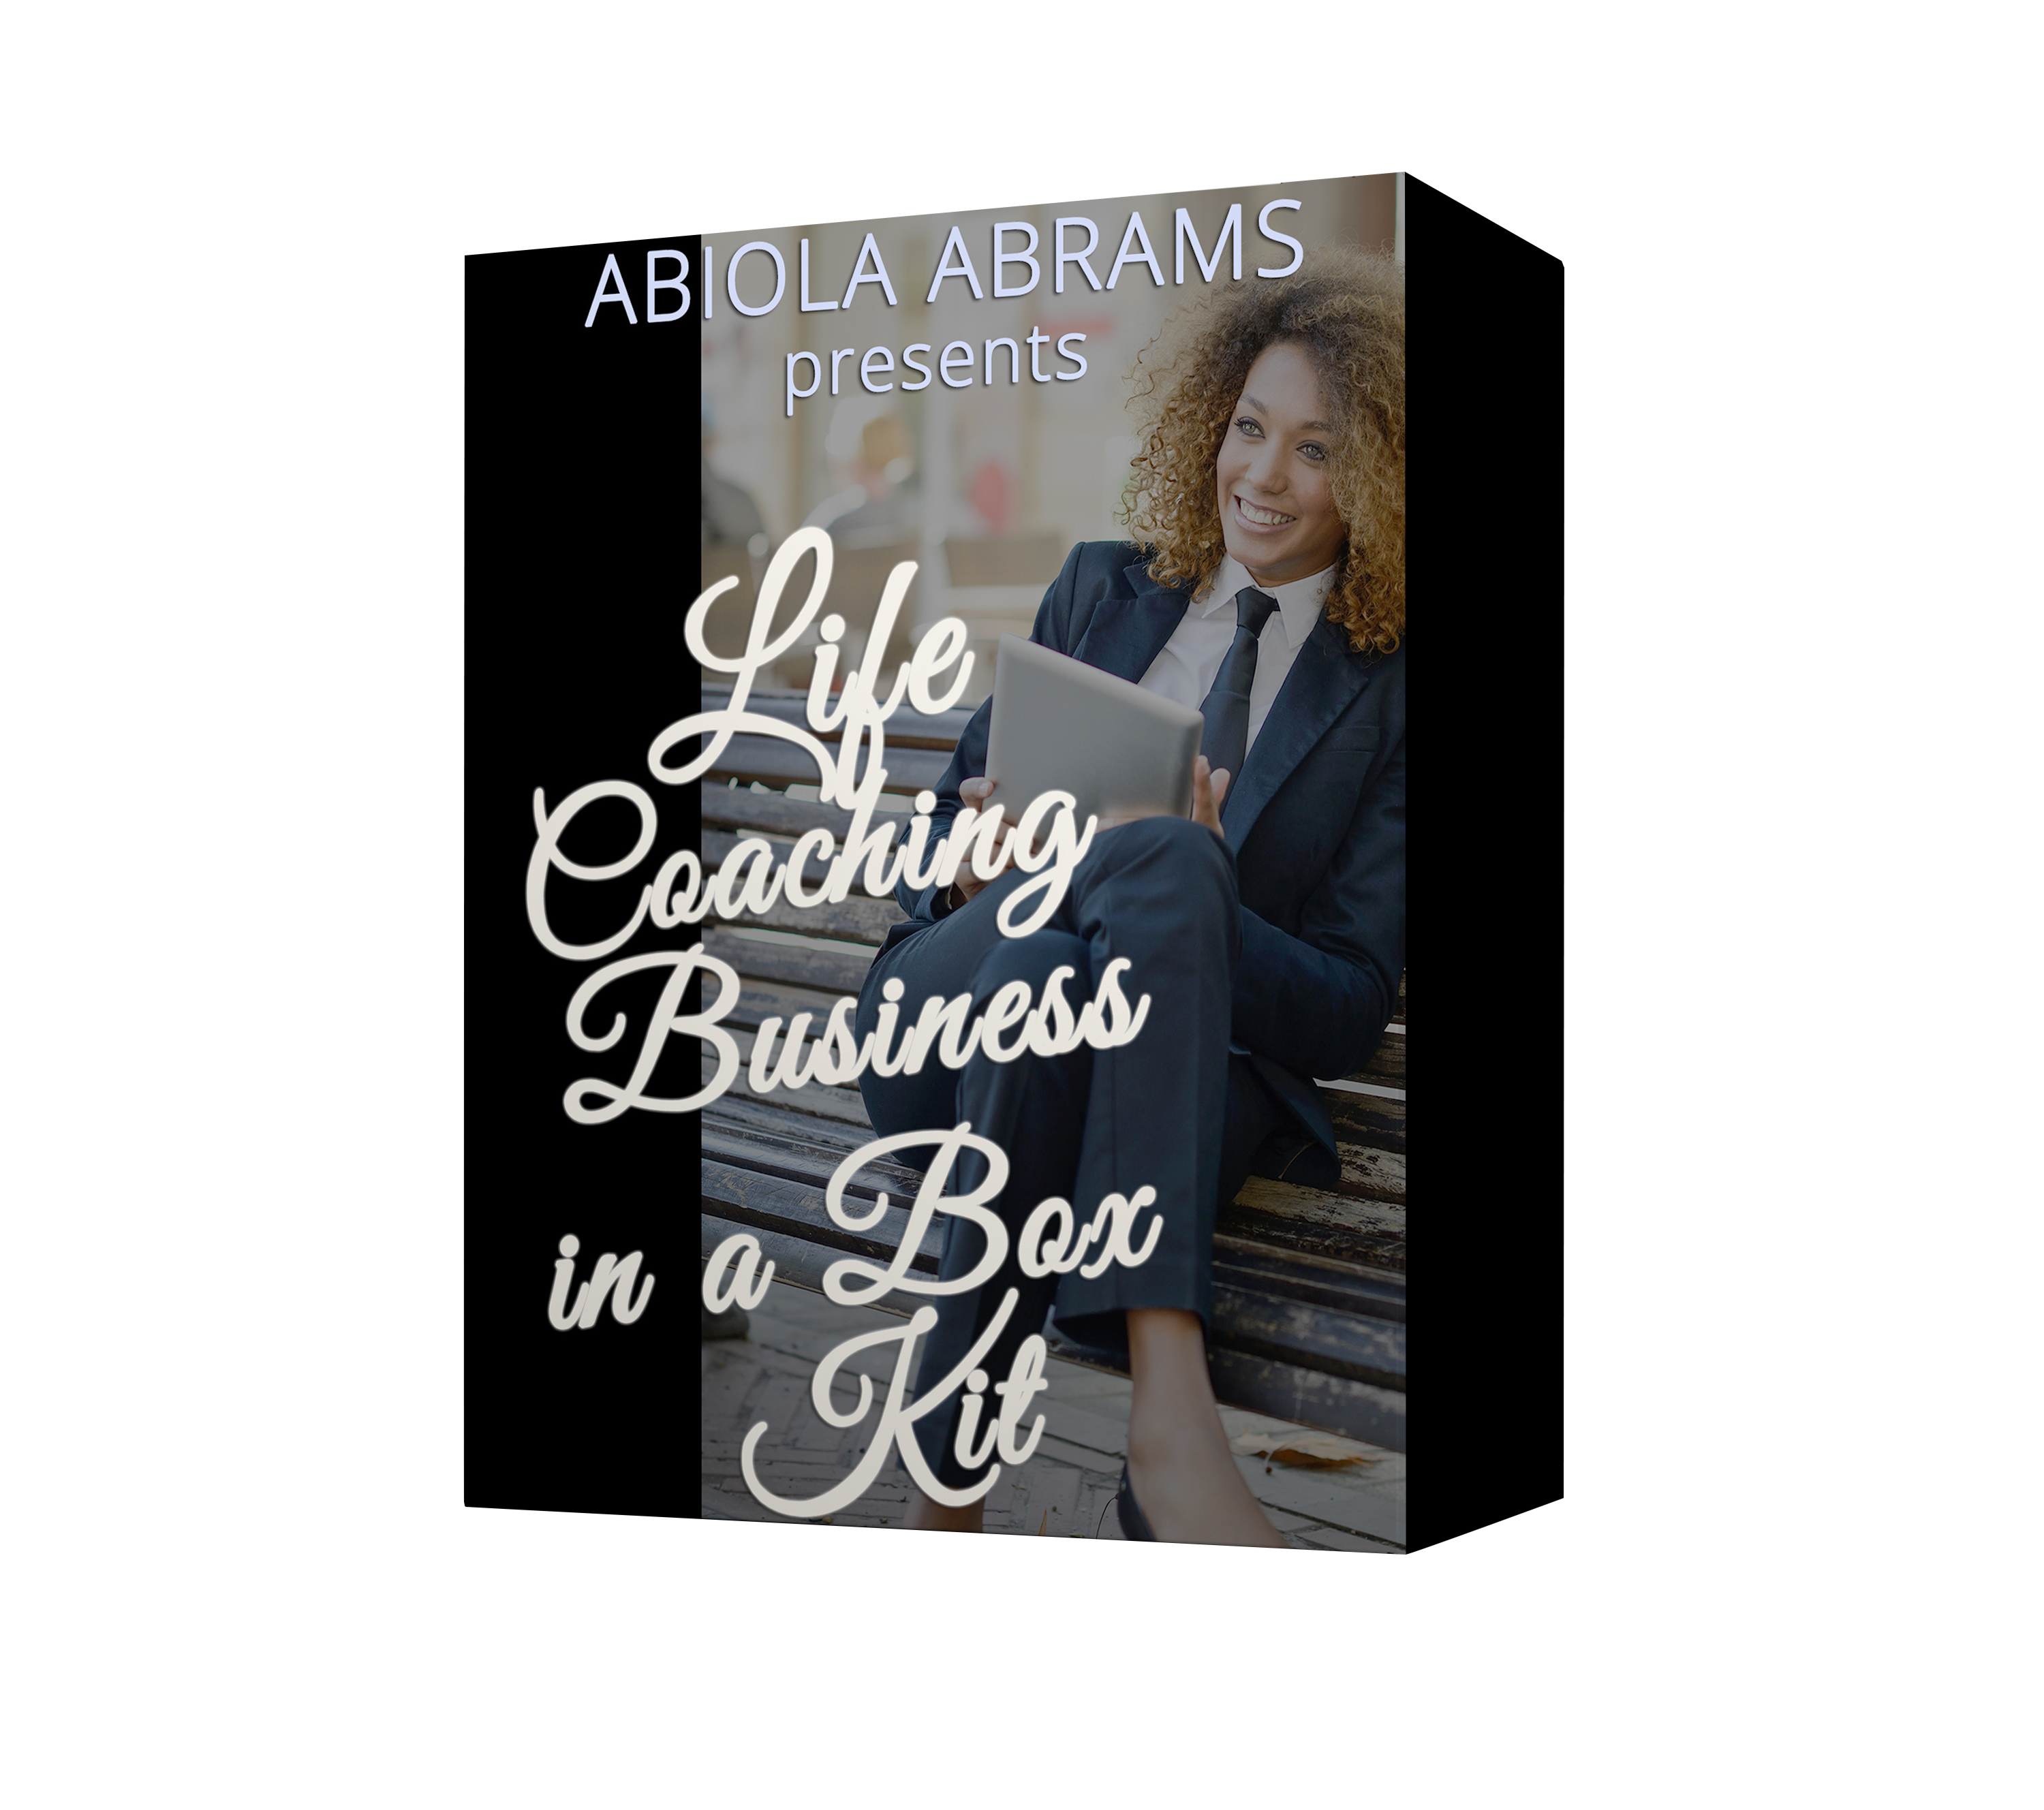 Life Coaching Business in a Box Kit